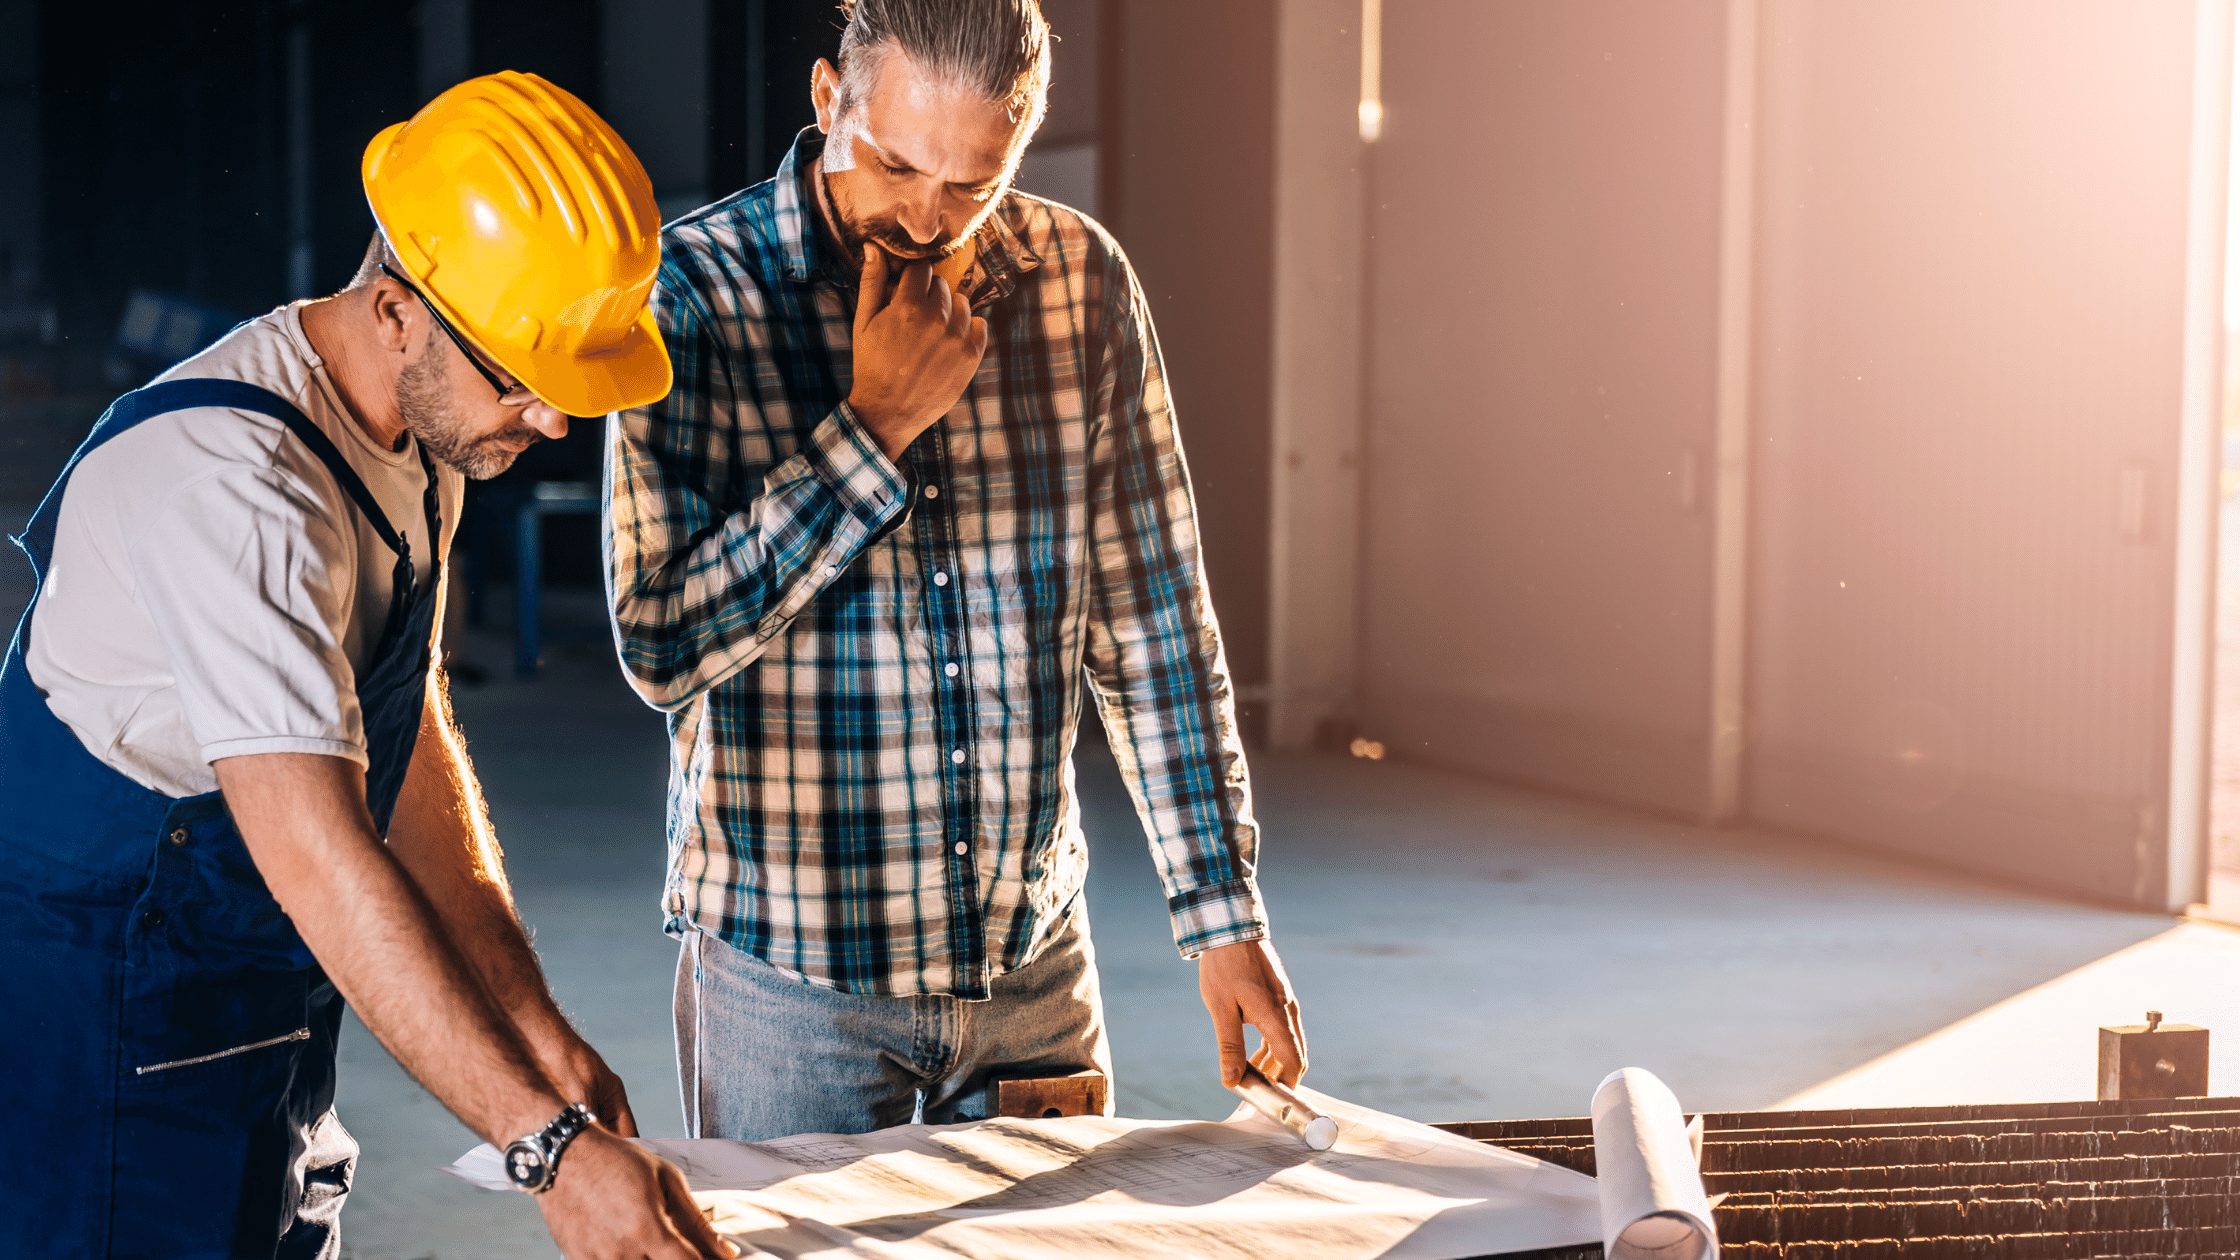 7 Simple Construction Site Safety Rules